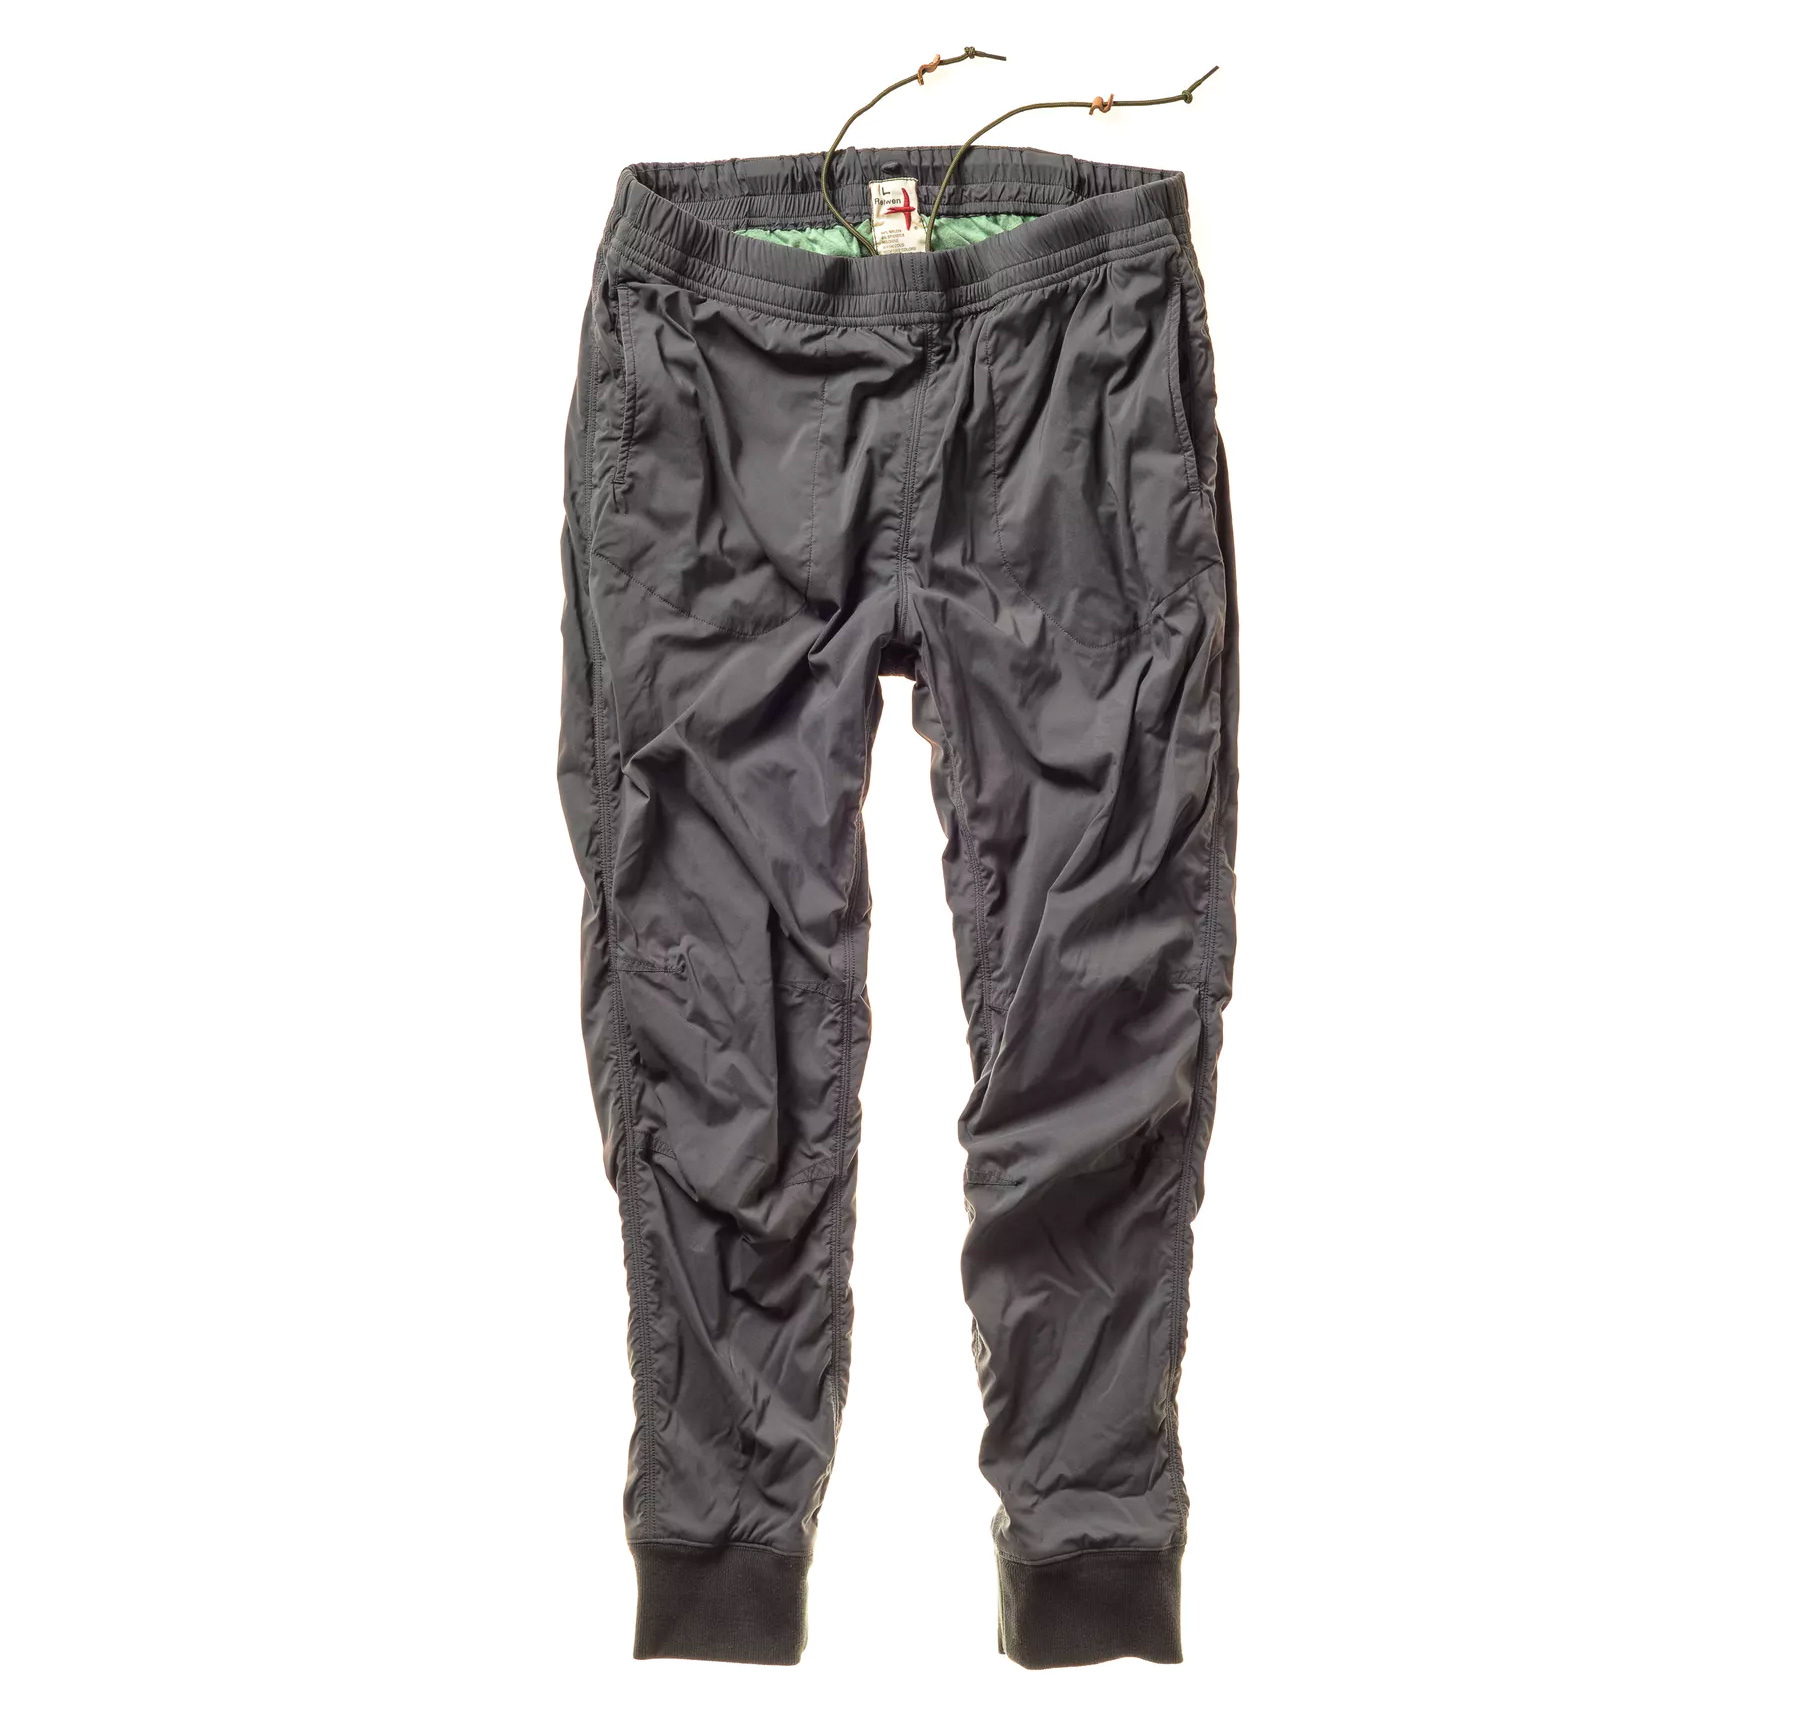 Relwen Makes Windpants That Stretch at werd.com